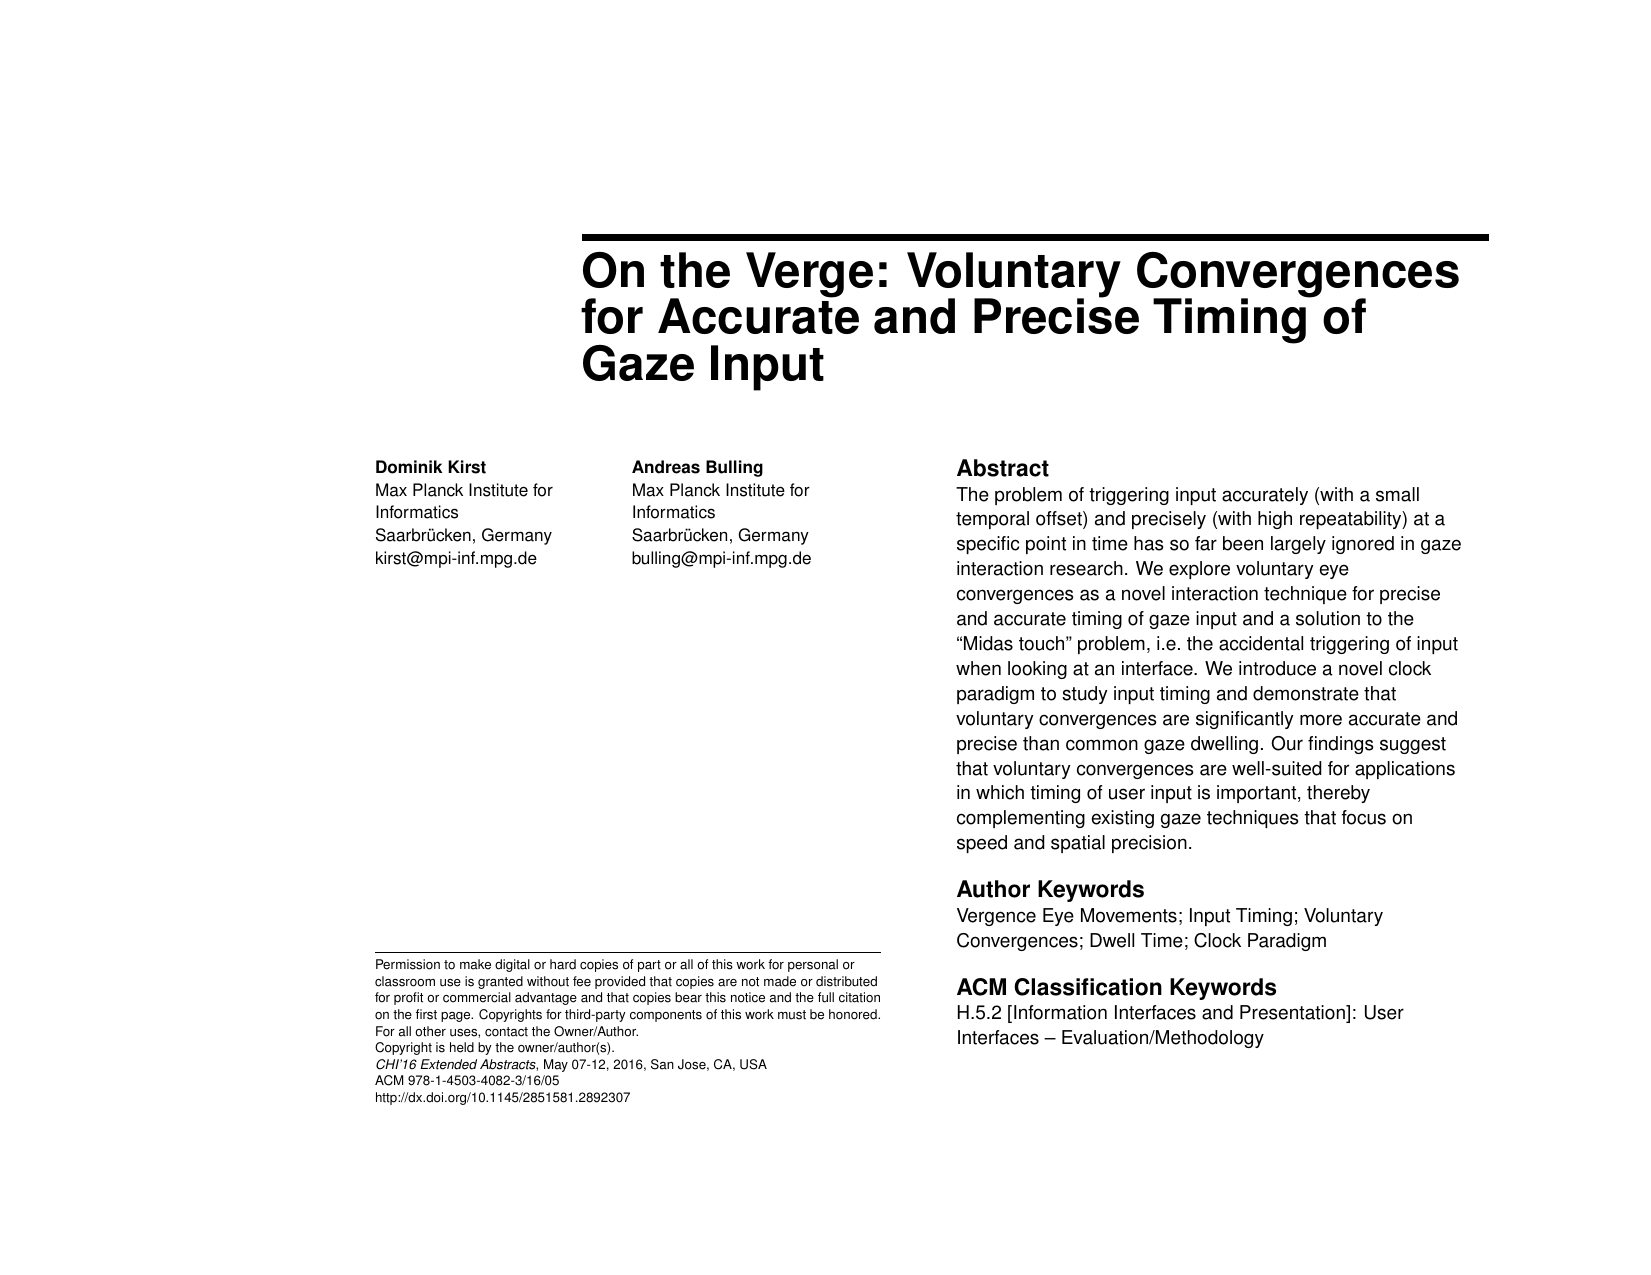 On the Verge: Voluntary Convergences for Accurate and Precise Timing of Gaze Input